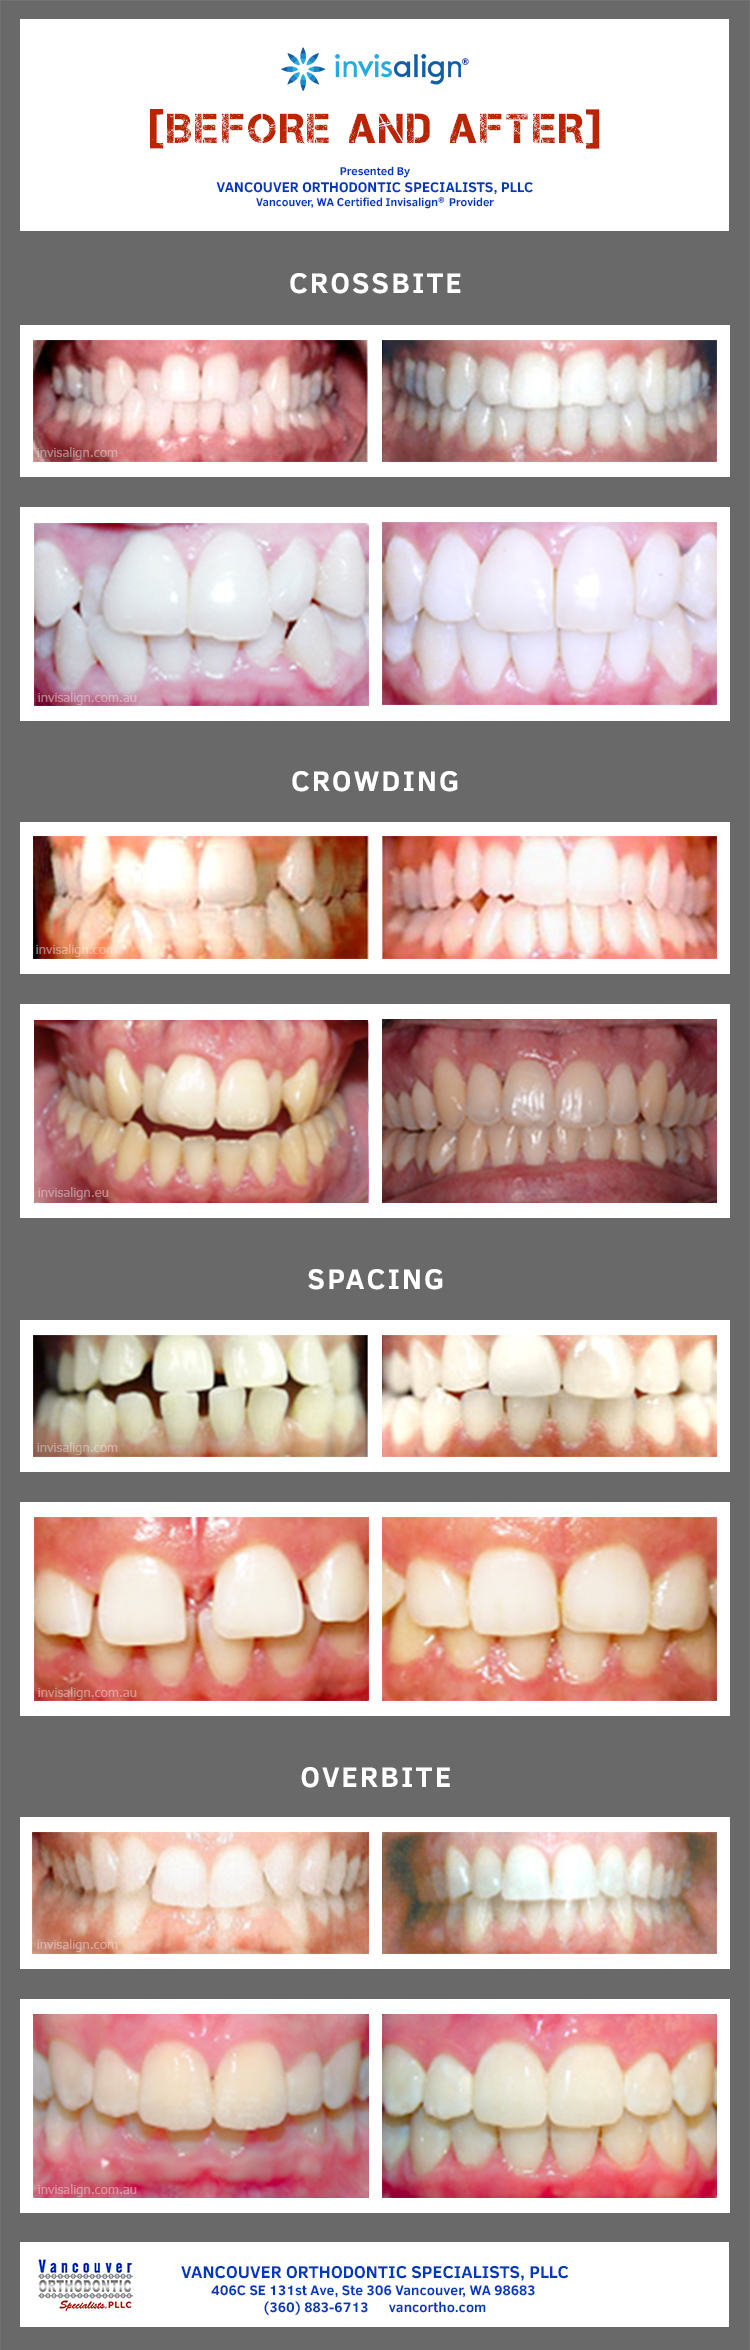 results of Invisalign orthodontic treatment